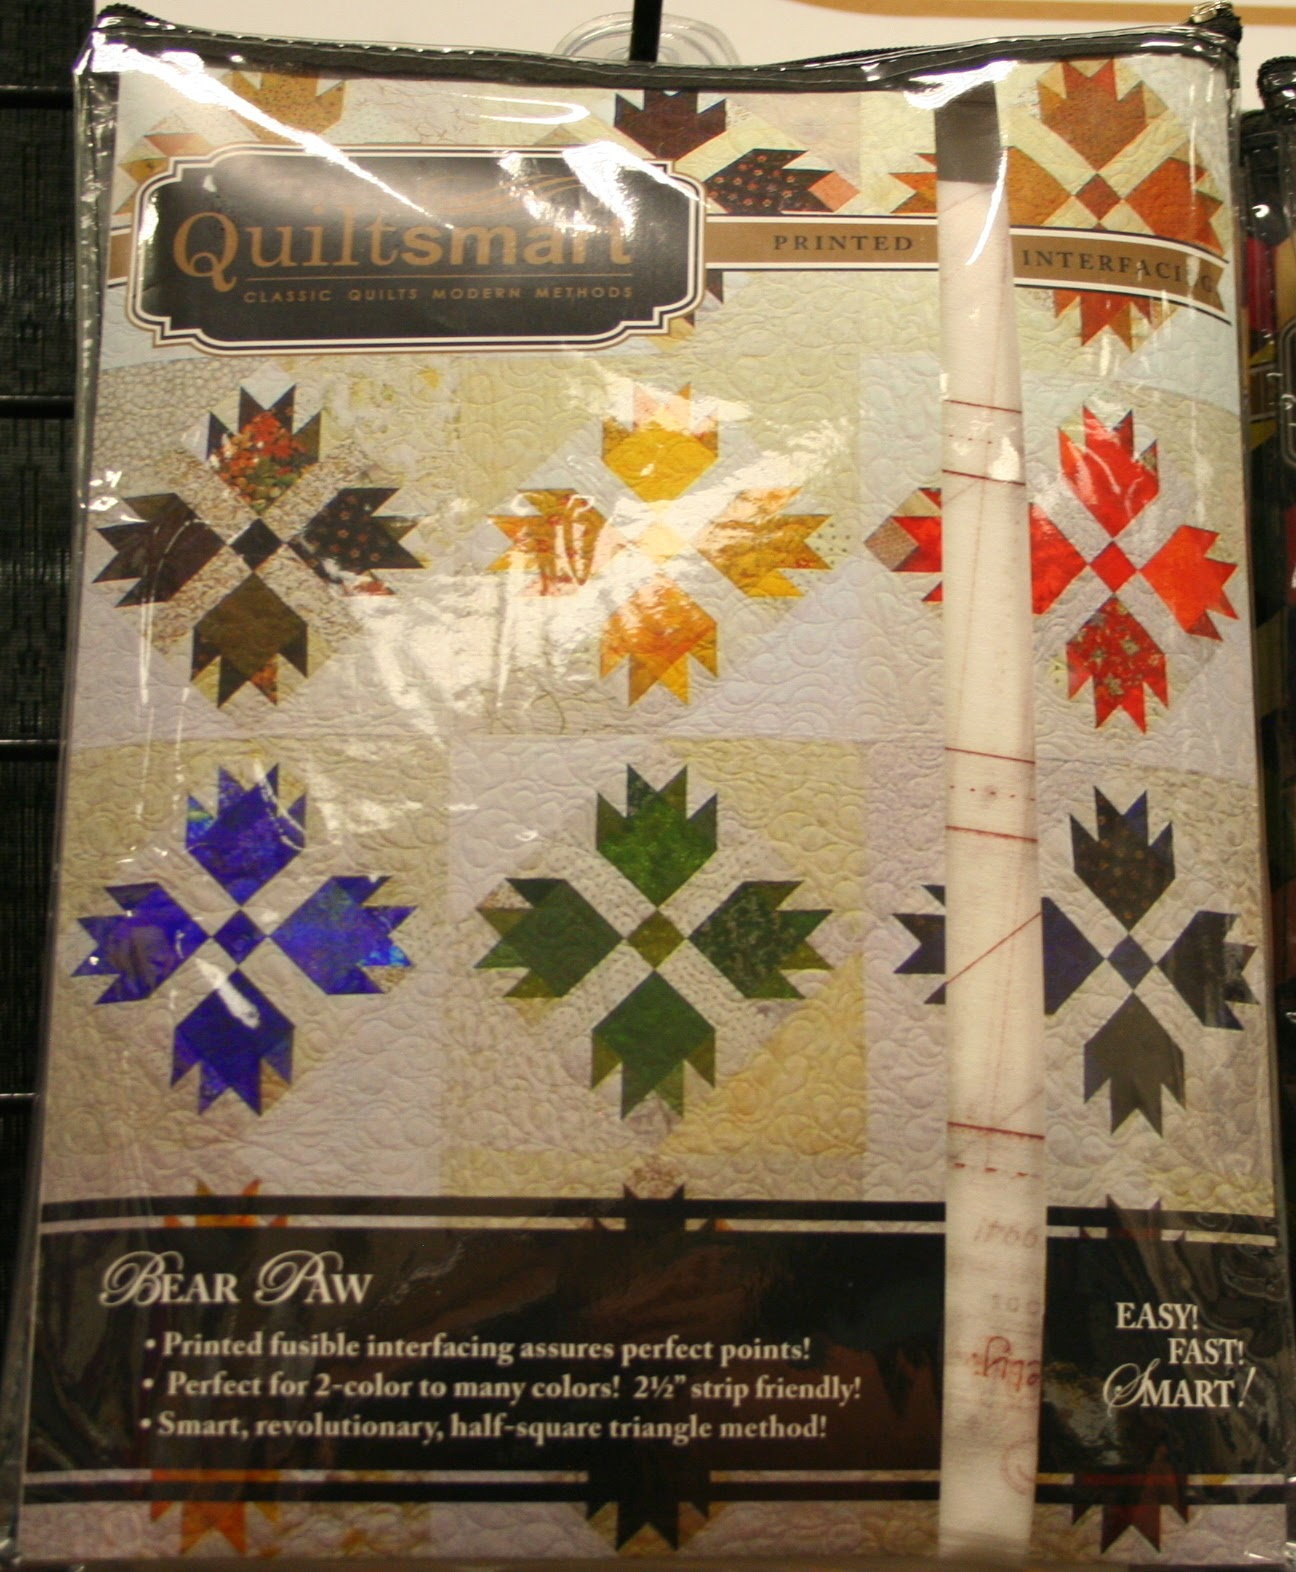 Quiltsmart Bear Paw Pattern